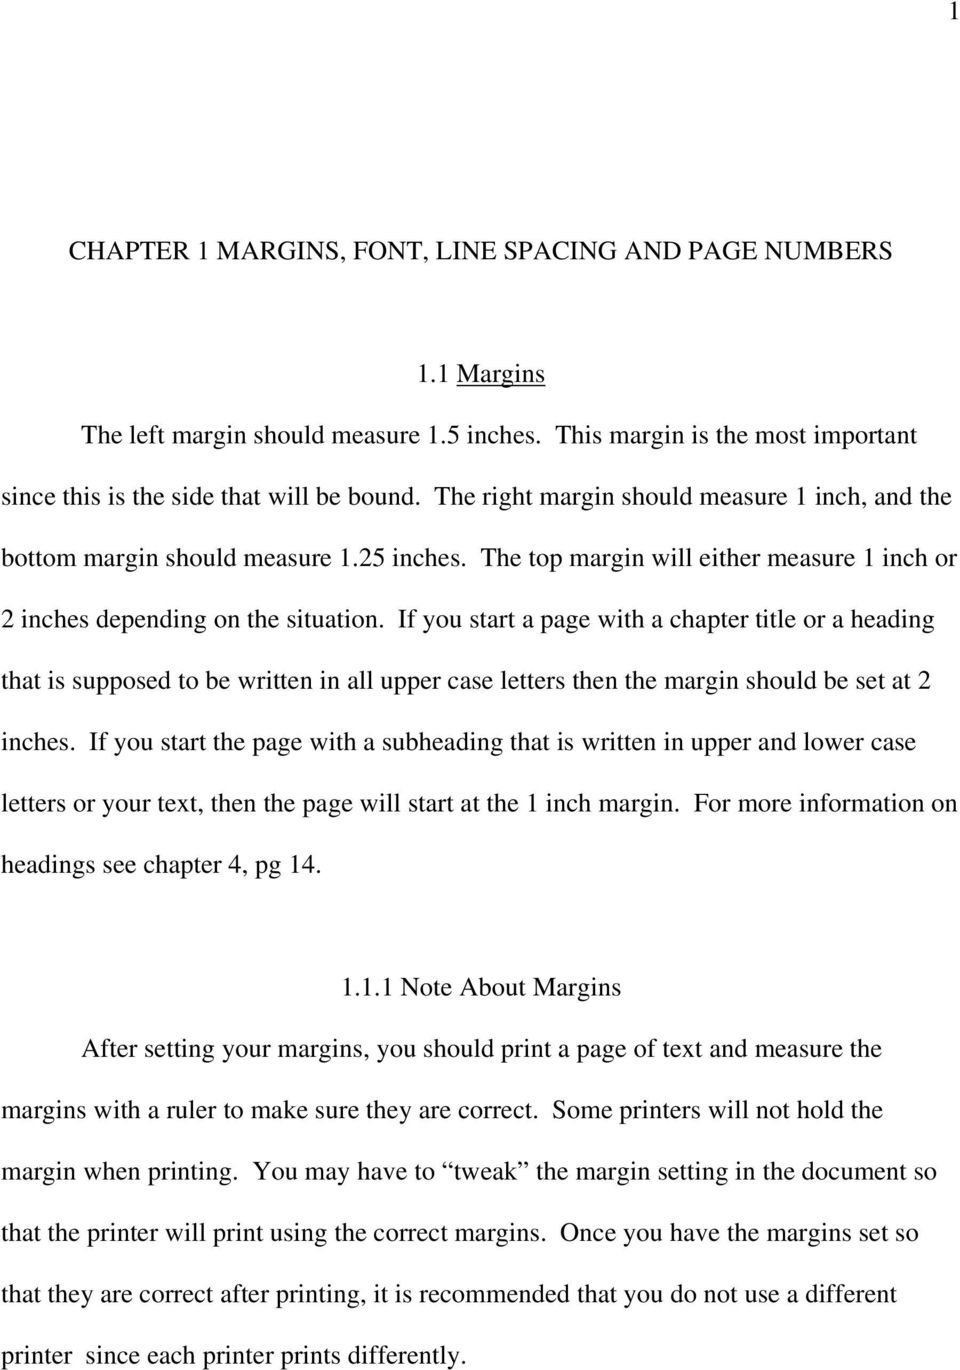 If you start a page with a chapter title or a heading that is supposed to be written in all upper case letters then the margin should be set at 2 inches.